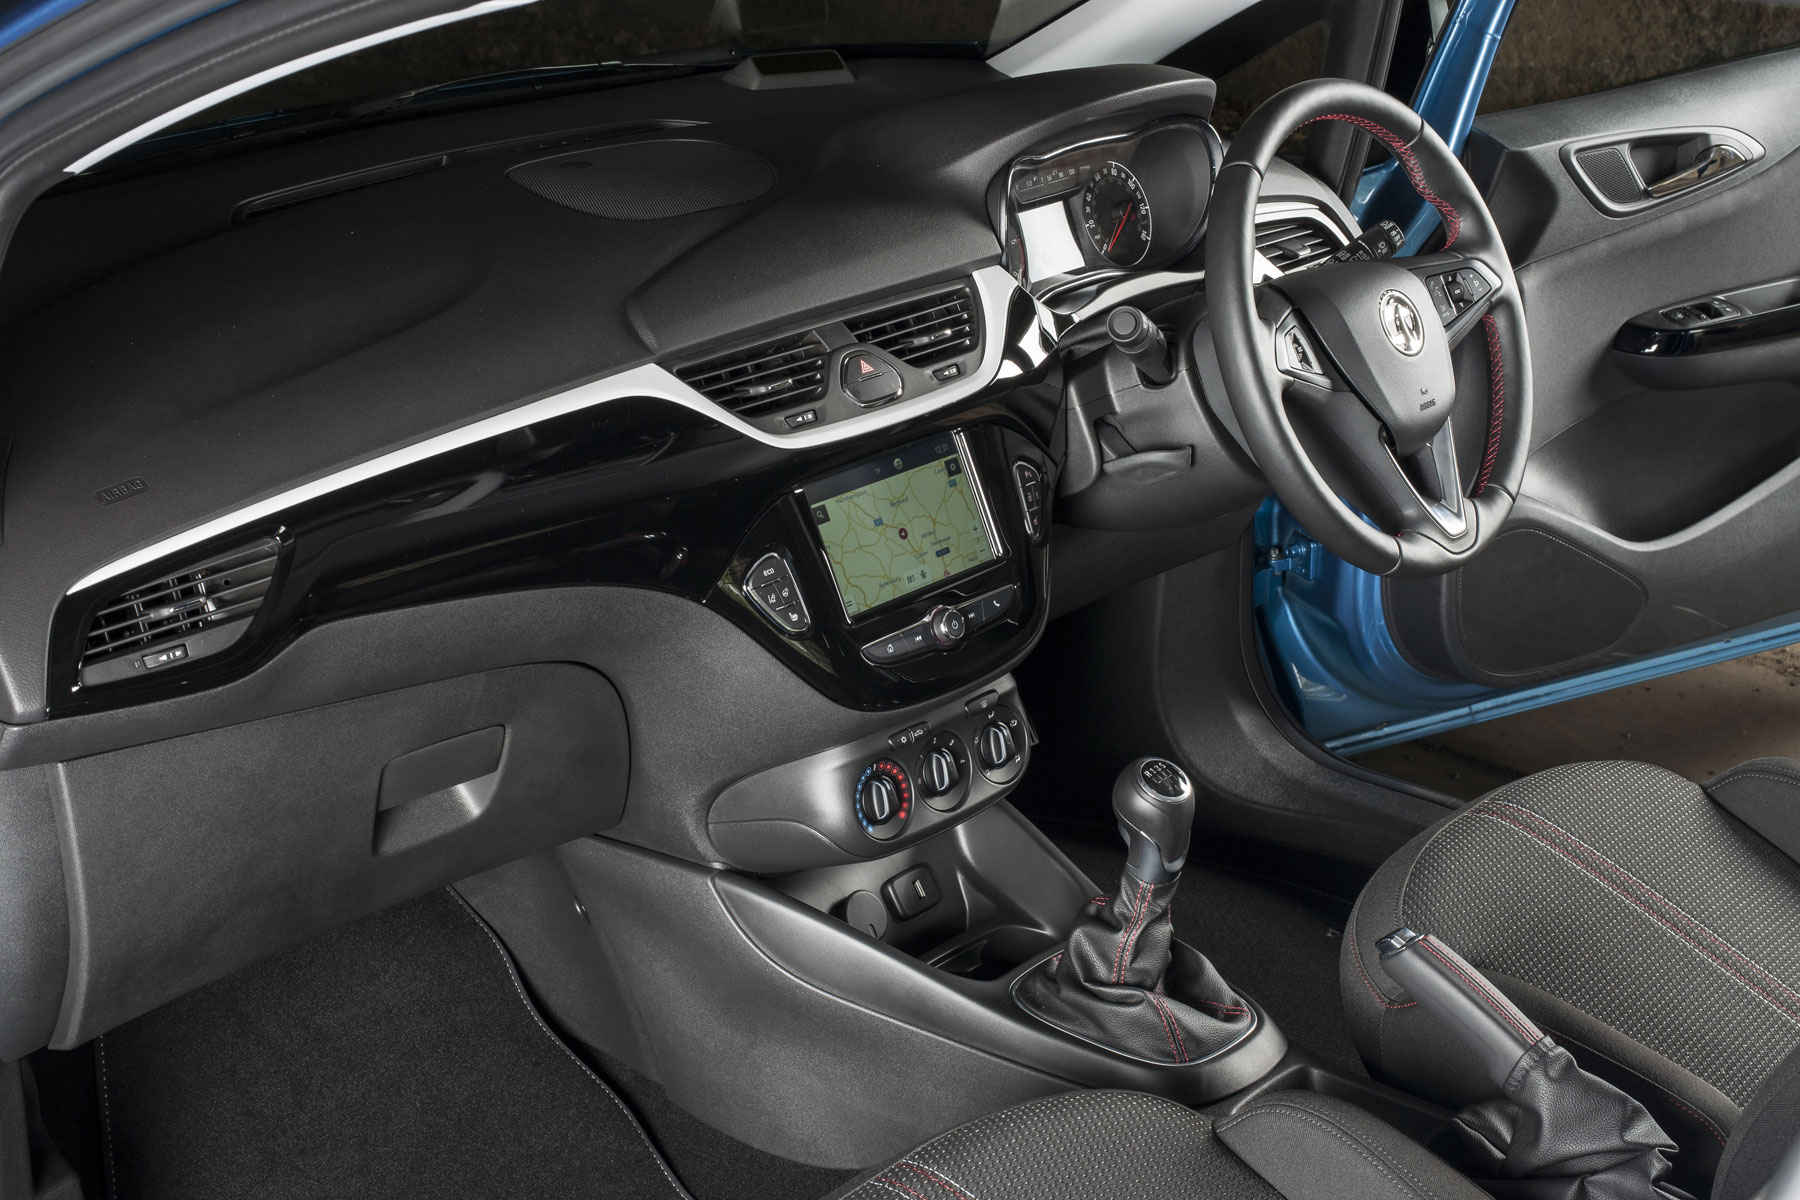 Vauxhall Corsavan Limited Edition Nav review - interior